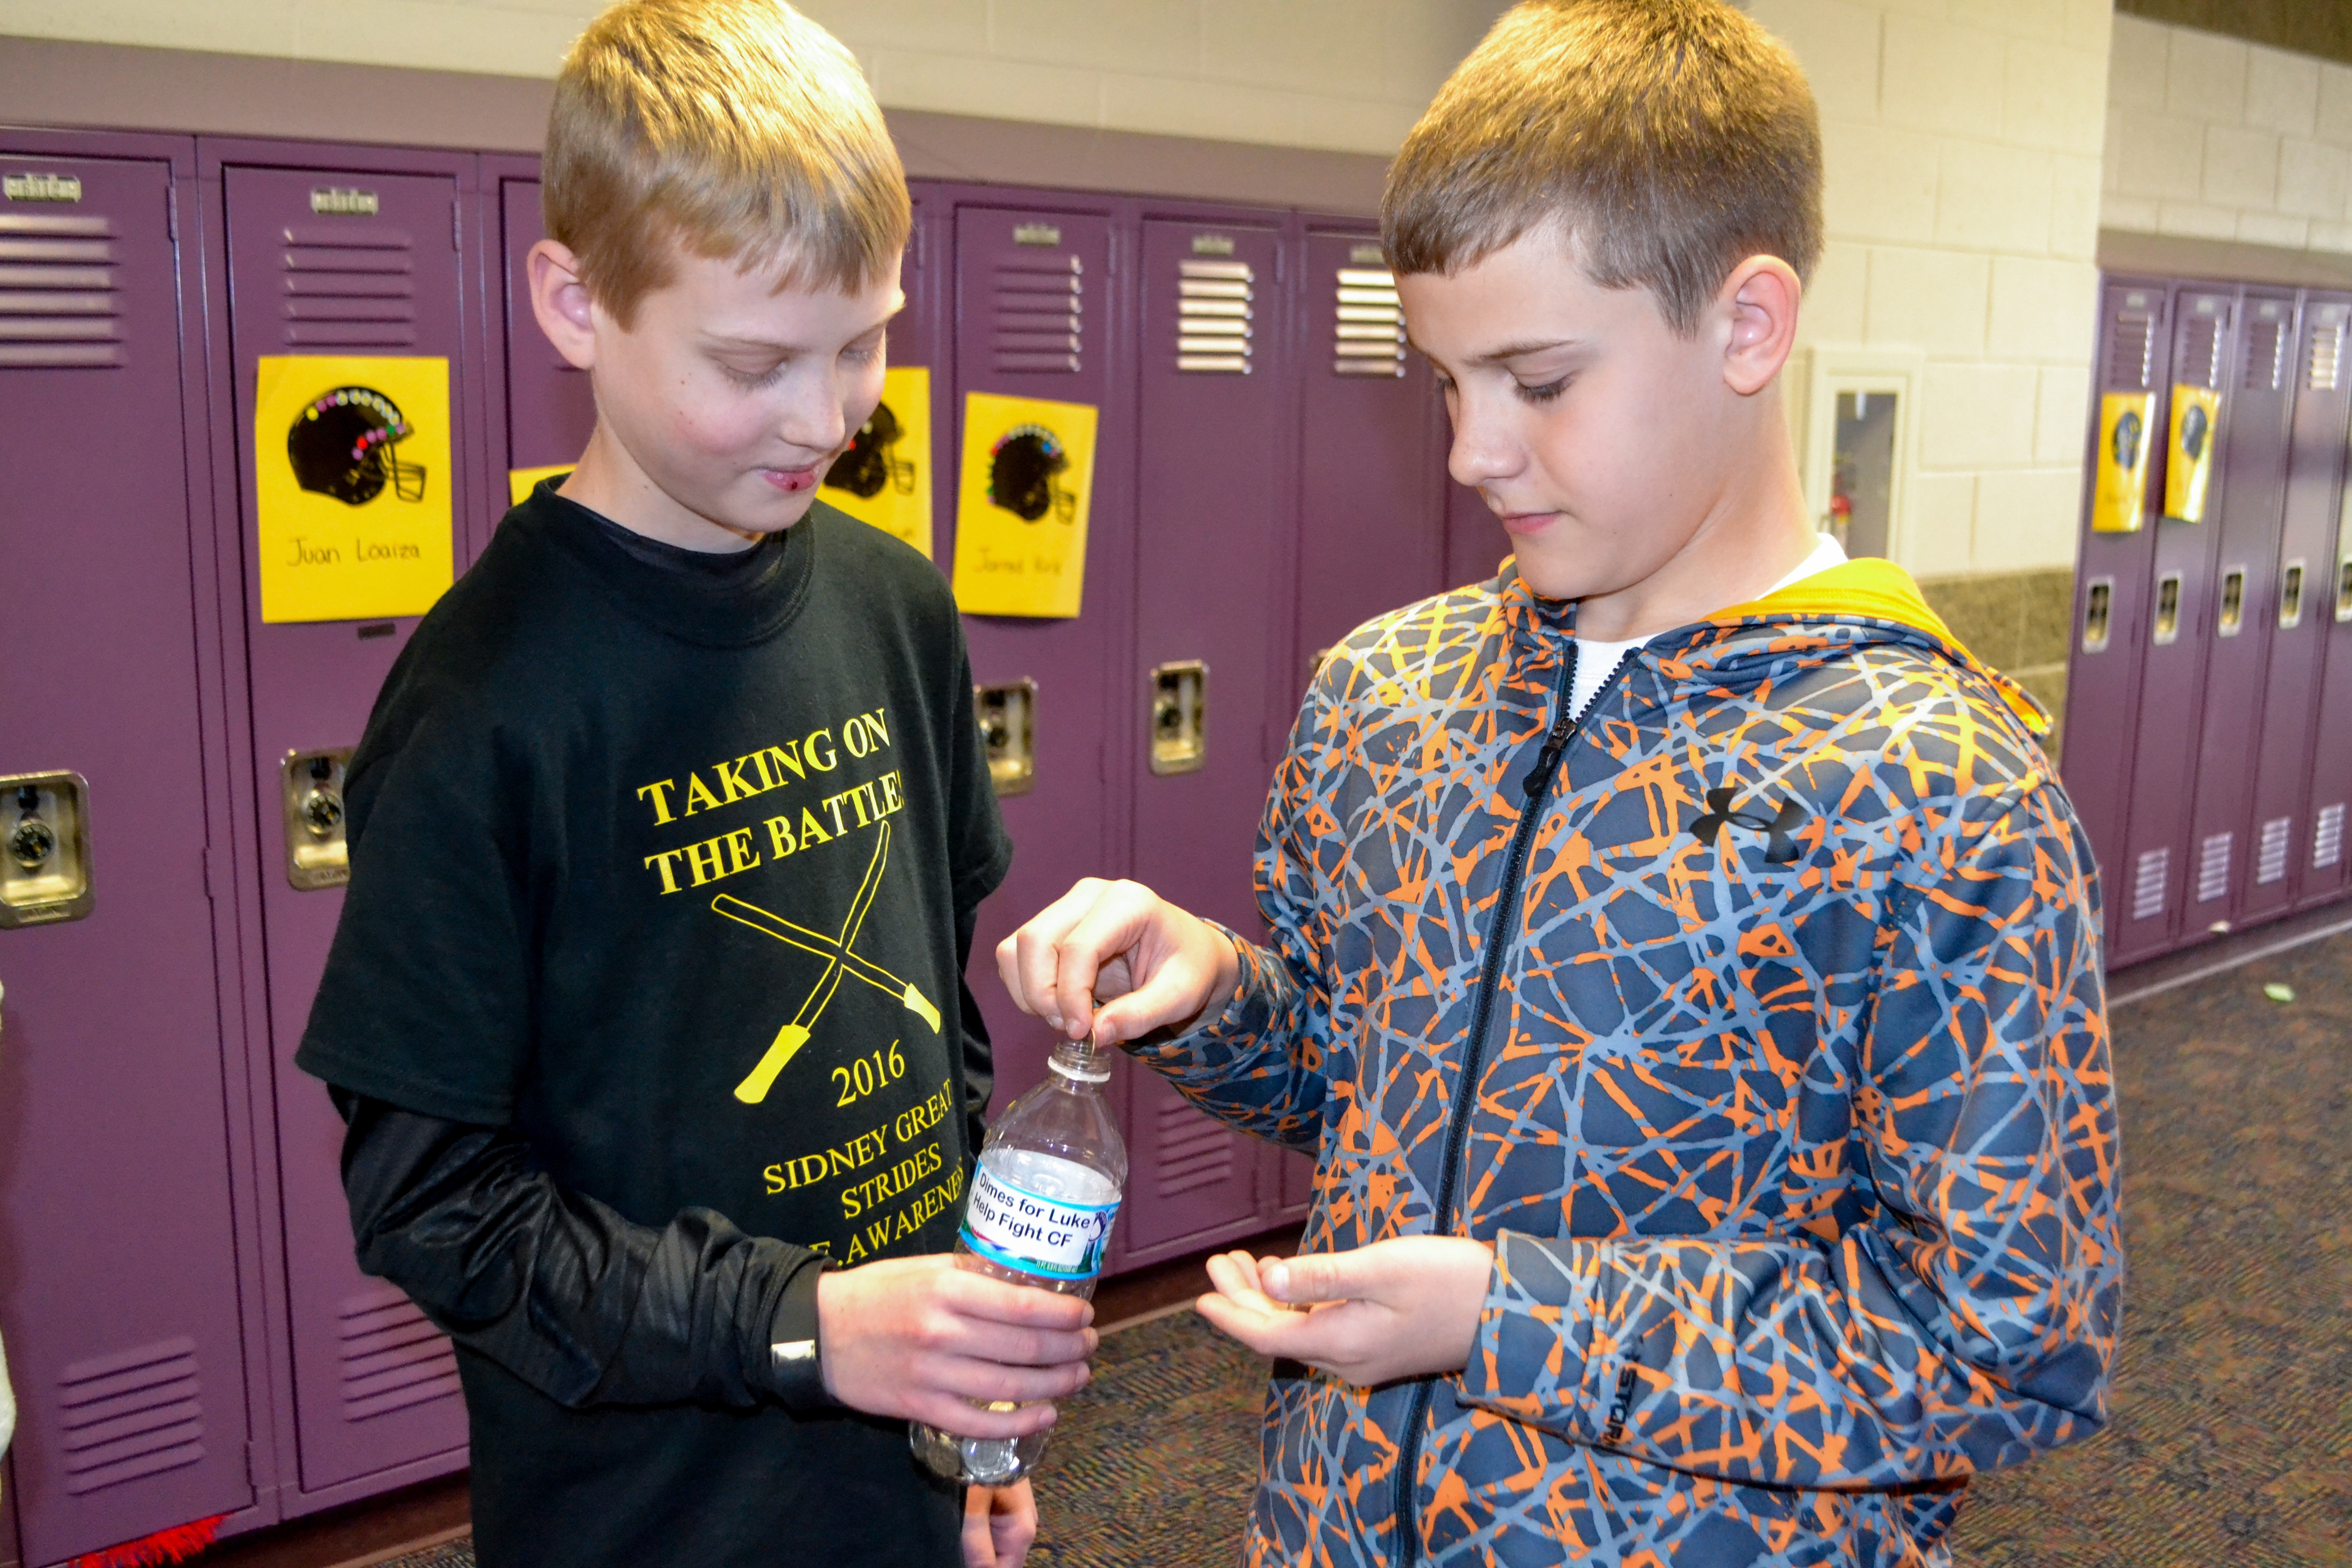 SMS 6th grade students collect dimes for the Cystic Fibrosis Foundation in honor of their classmate Luke Bemus.